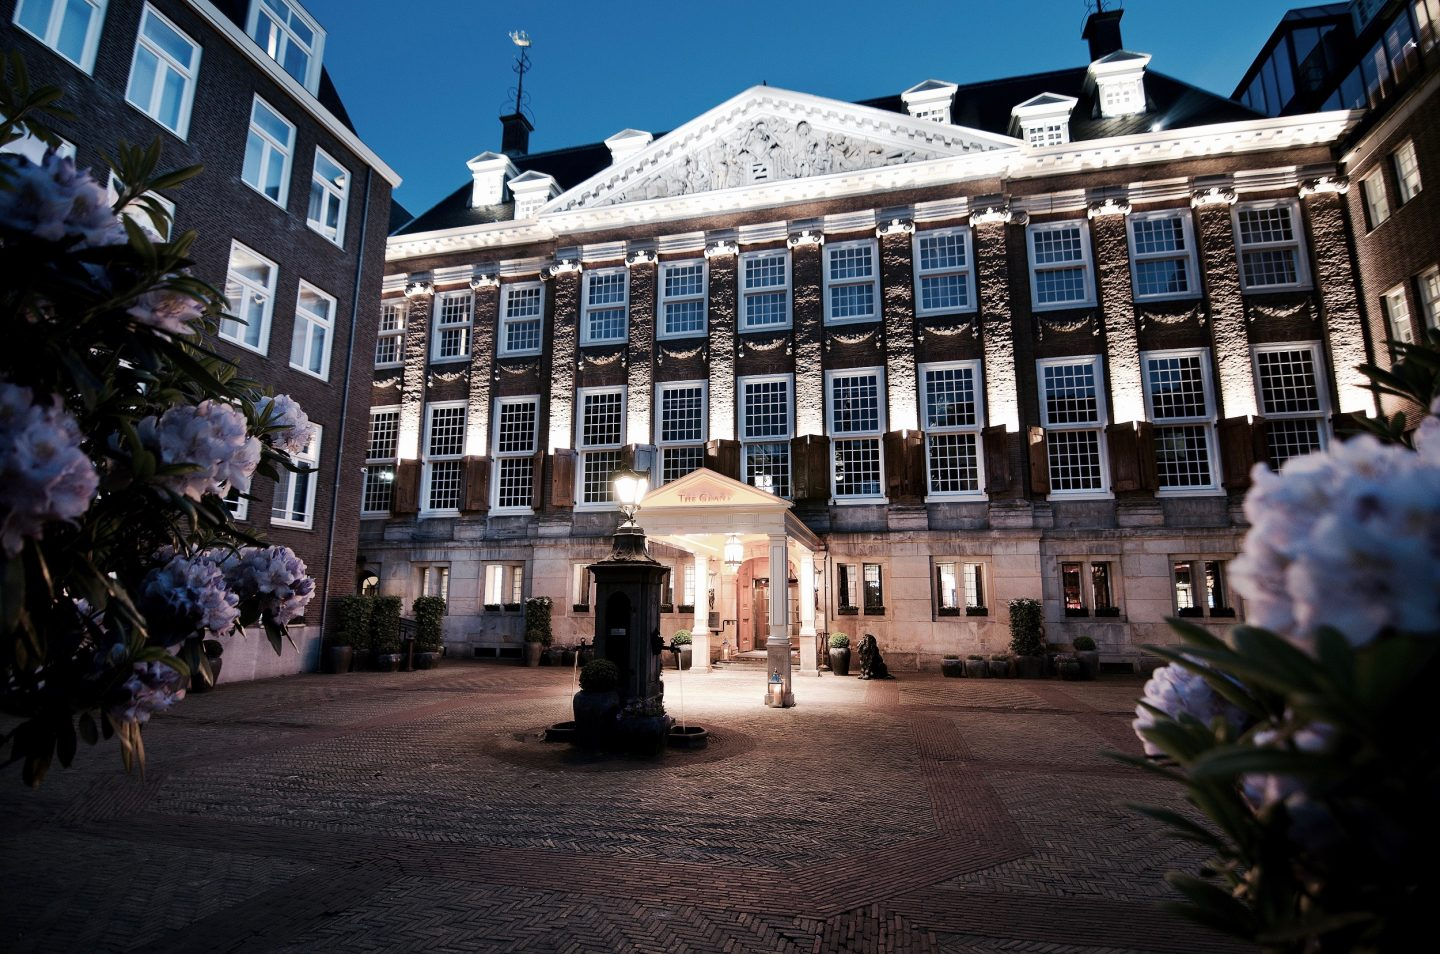 Hotel Sofitel Legend The Grand | Amsterdam